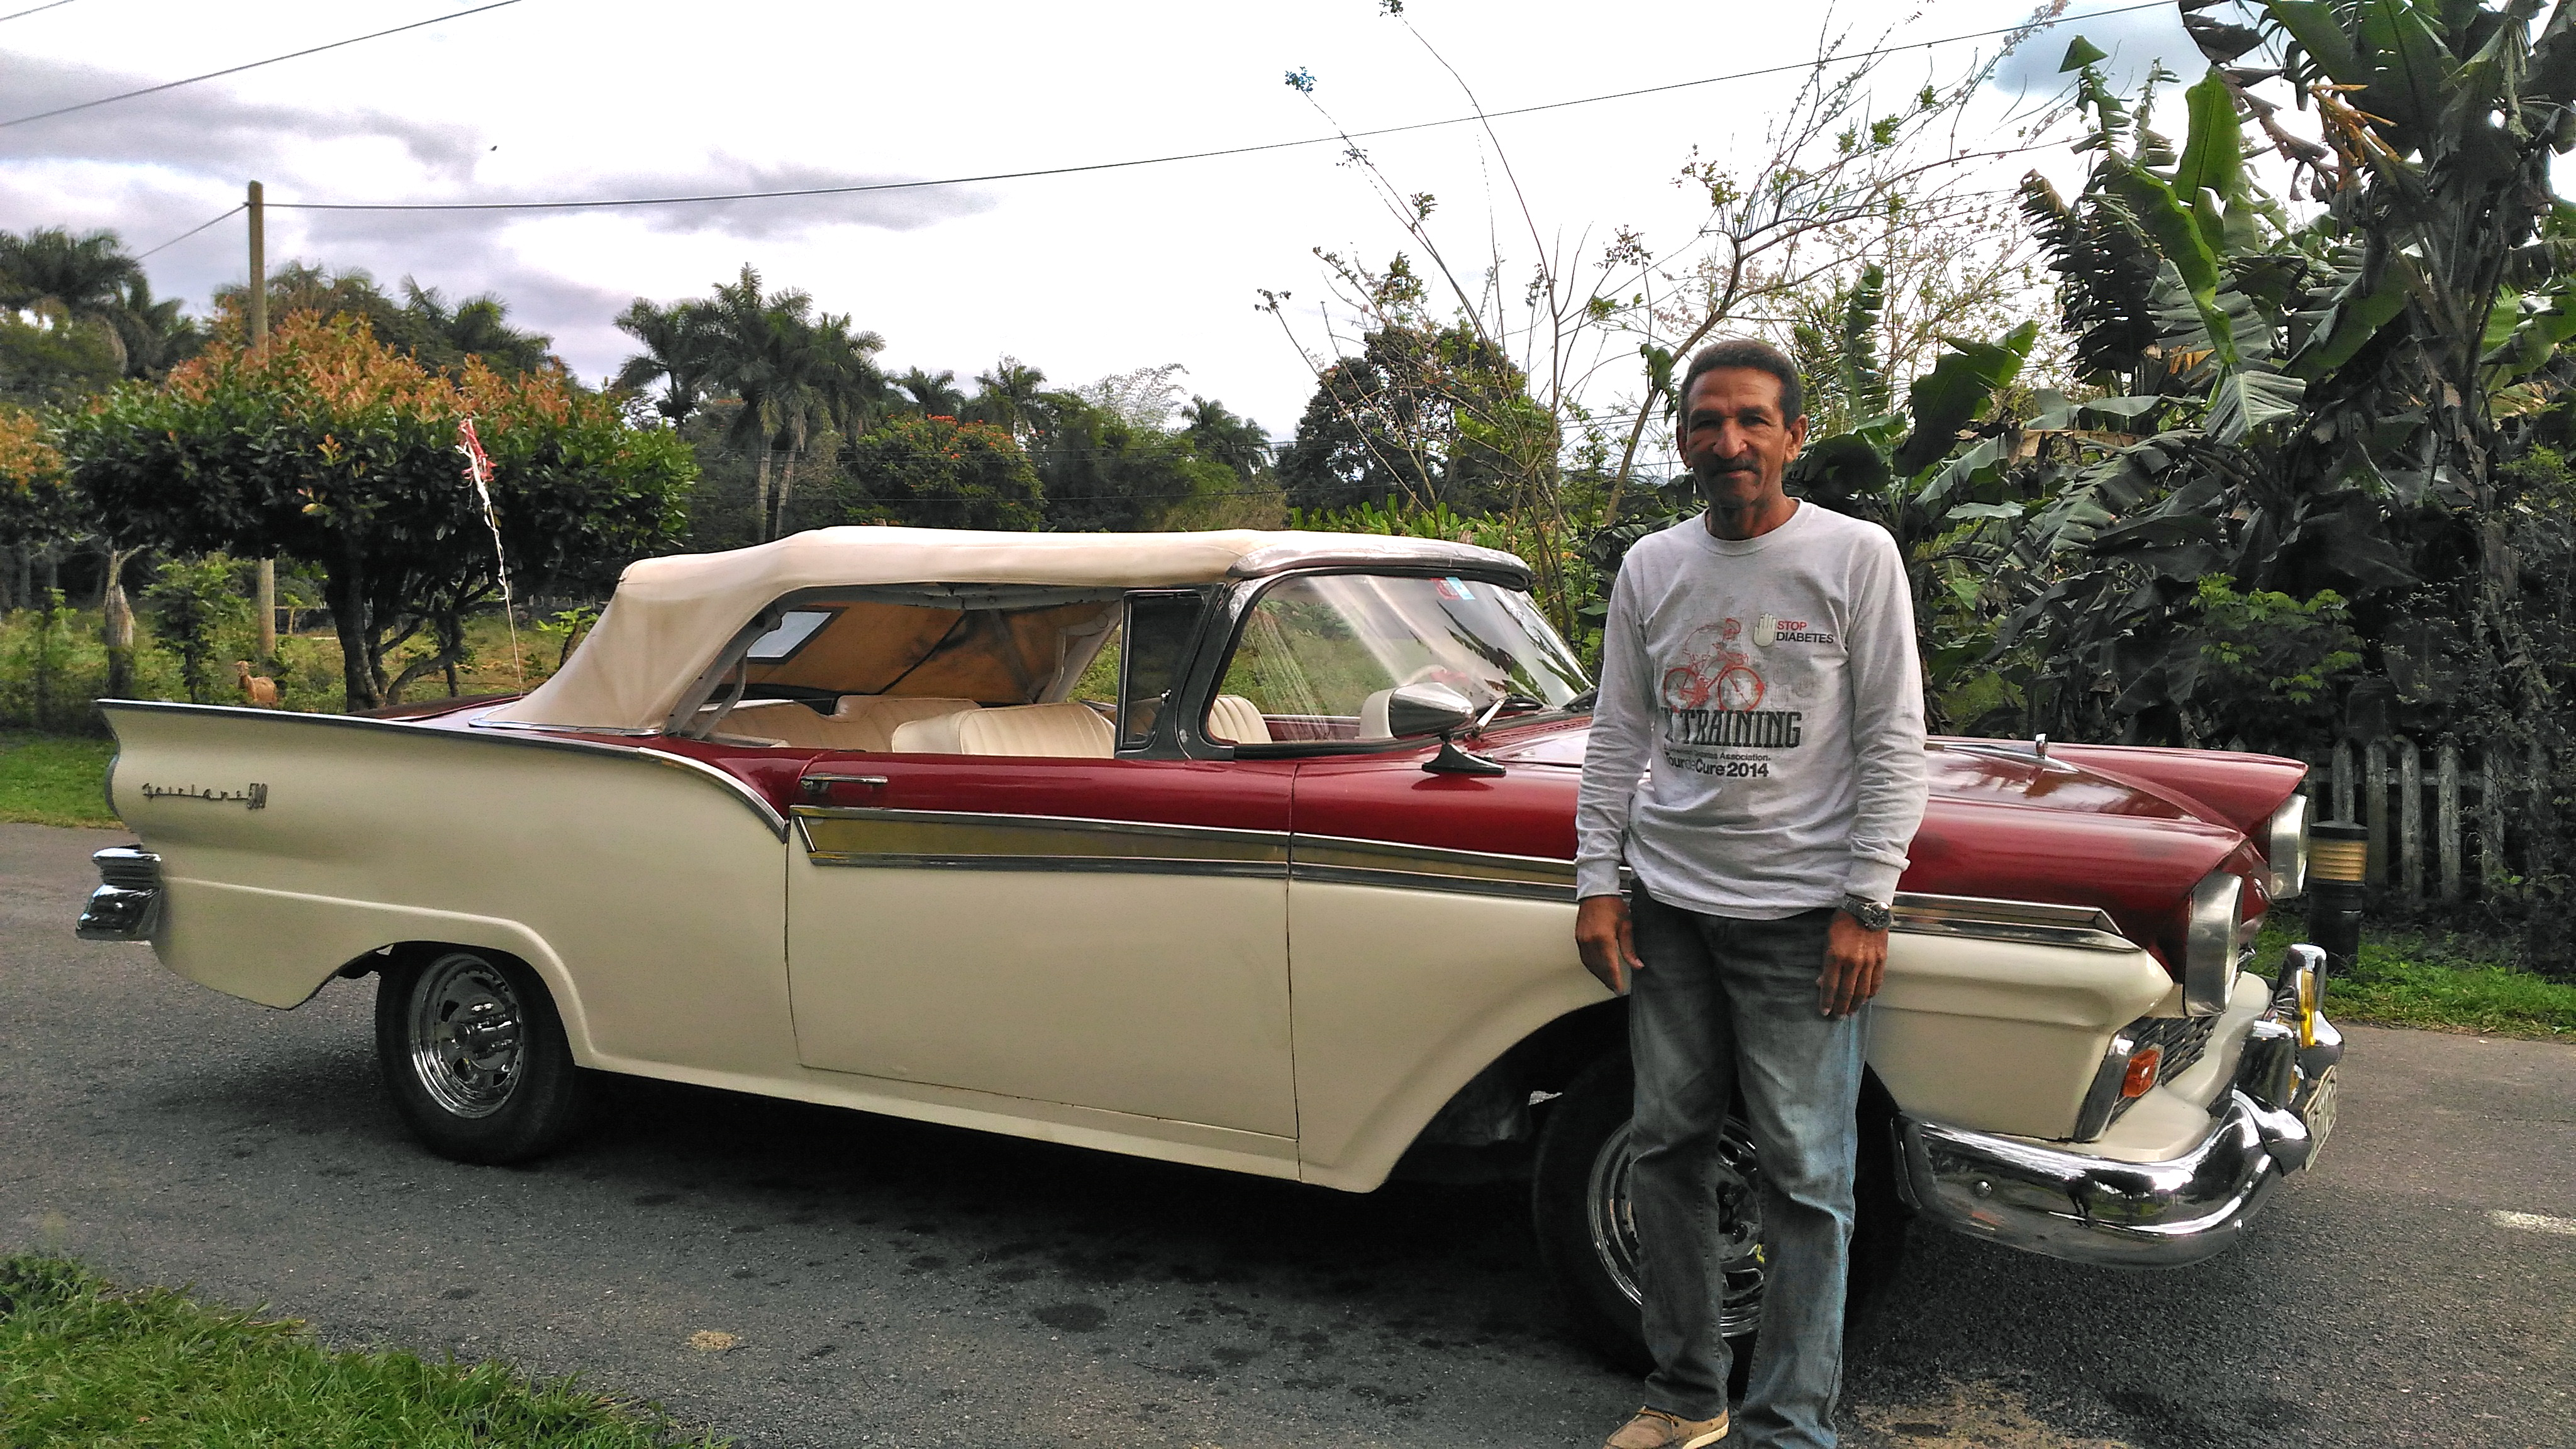 My driver and his Tourlaine! day trips from vinales cuba htings to see around vinales cuba st. tomas cave near vinales cuba travel blog